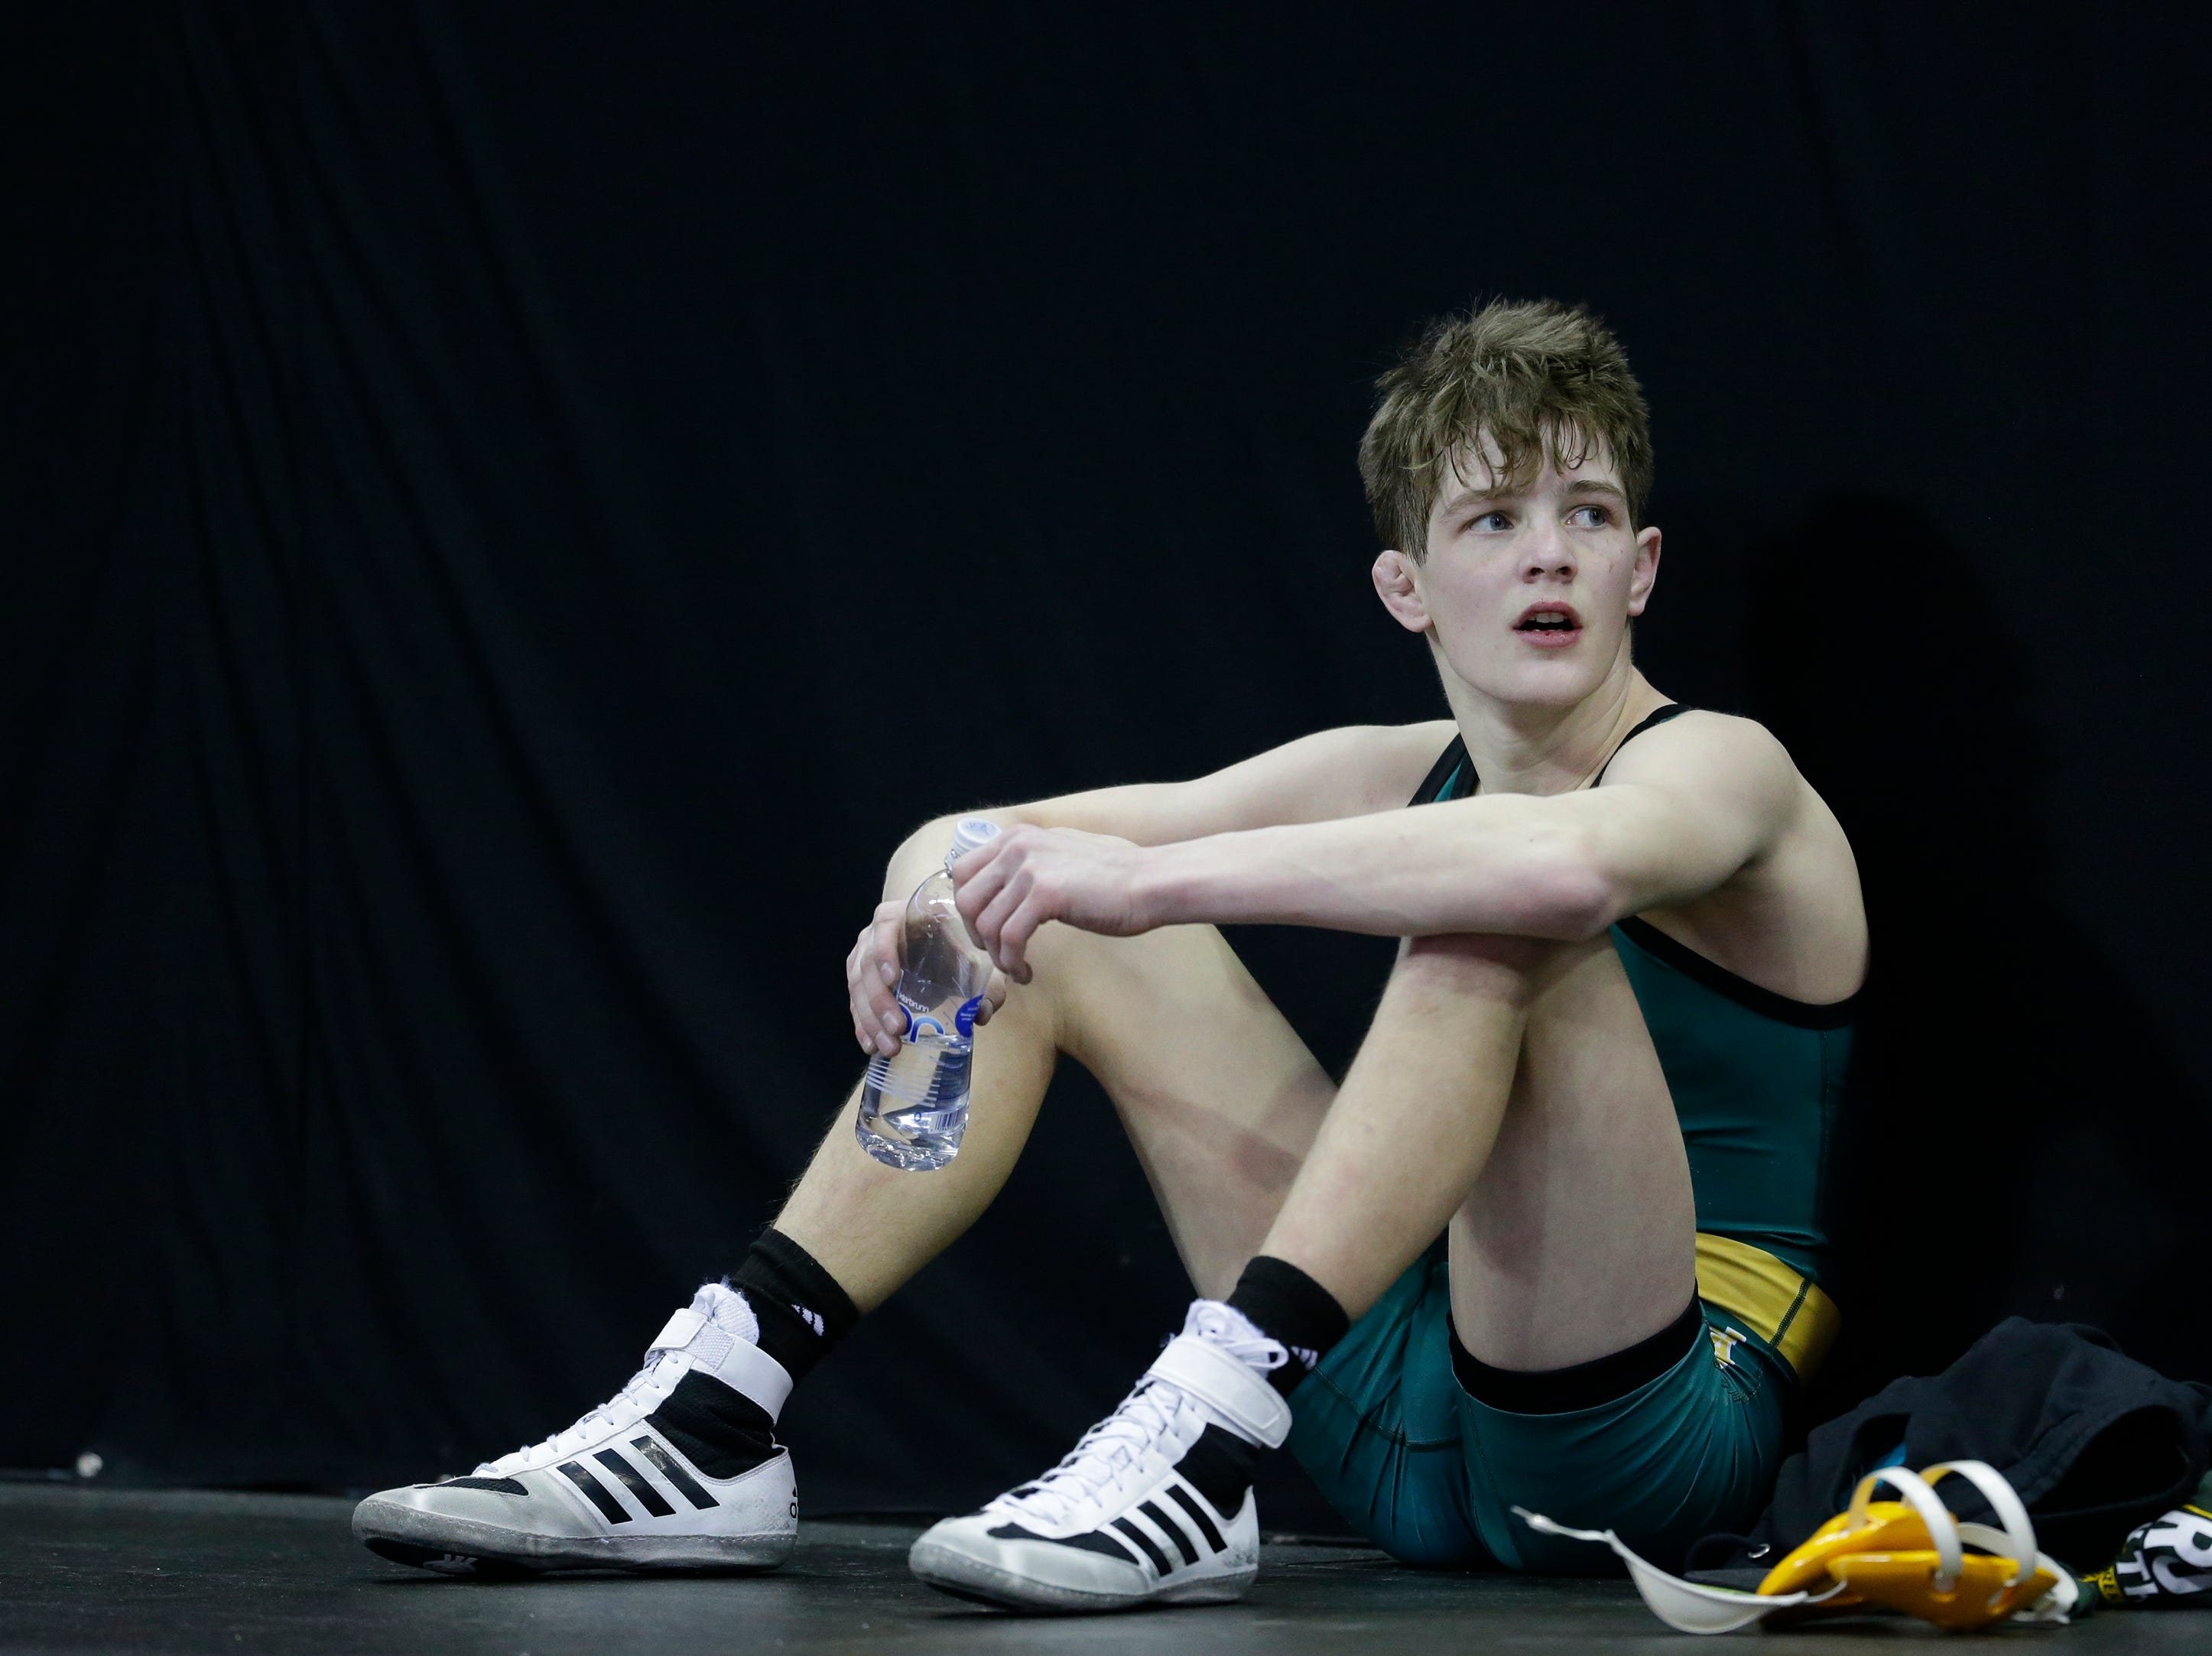 Ashwaubenon's Cody Minor rests after winning his Division 1 113-pound weight class quarterfinal match during the WIAA state individual wrestling tournament at the Kohl Center Thursday, February 21, 2019, in Madison, Wis.